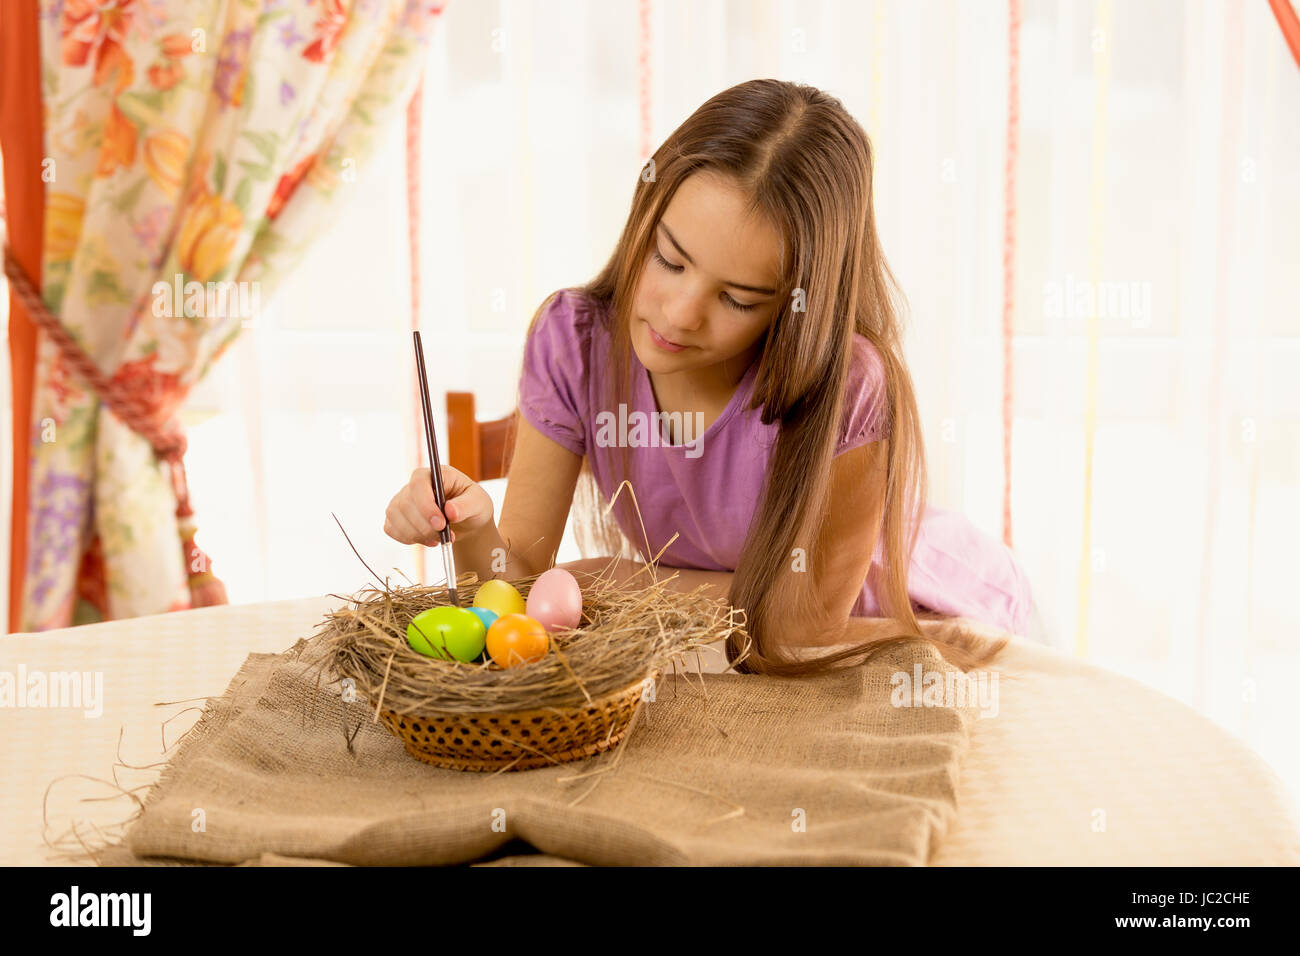 Portrait of cute girl decorating easter eggs in basket Stock Photo